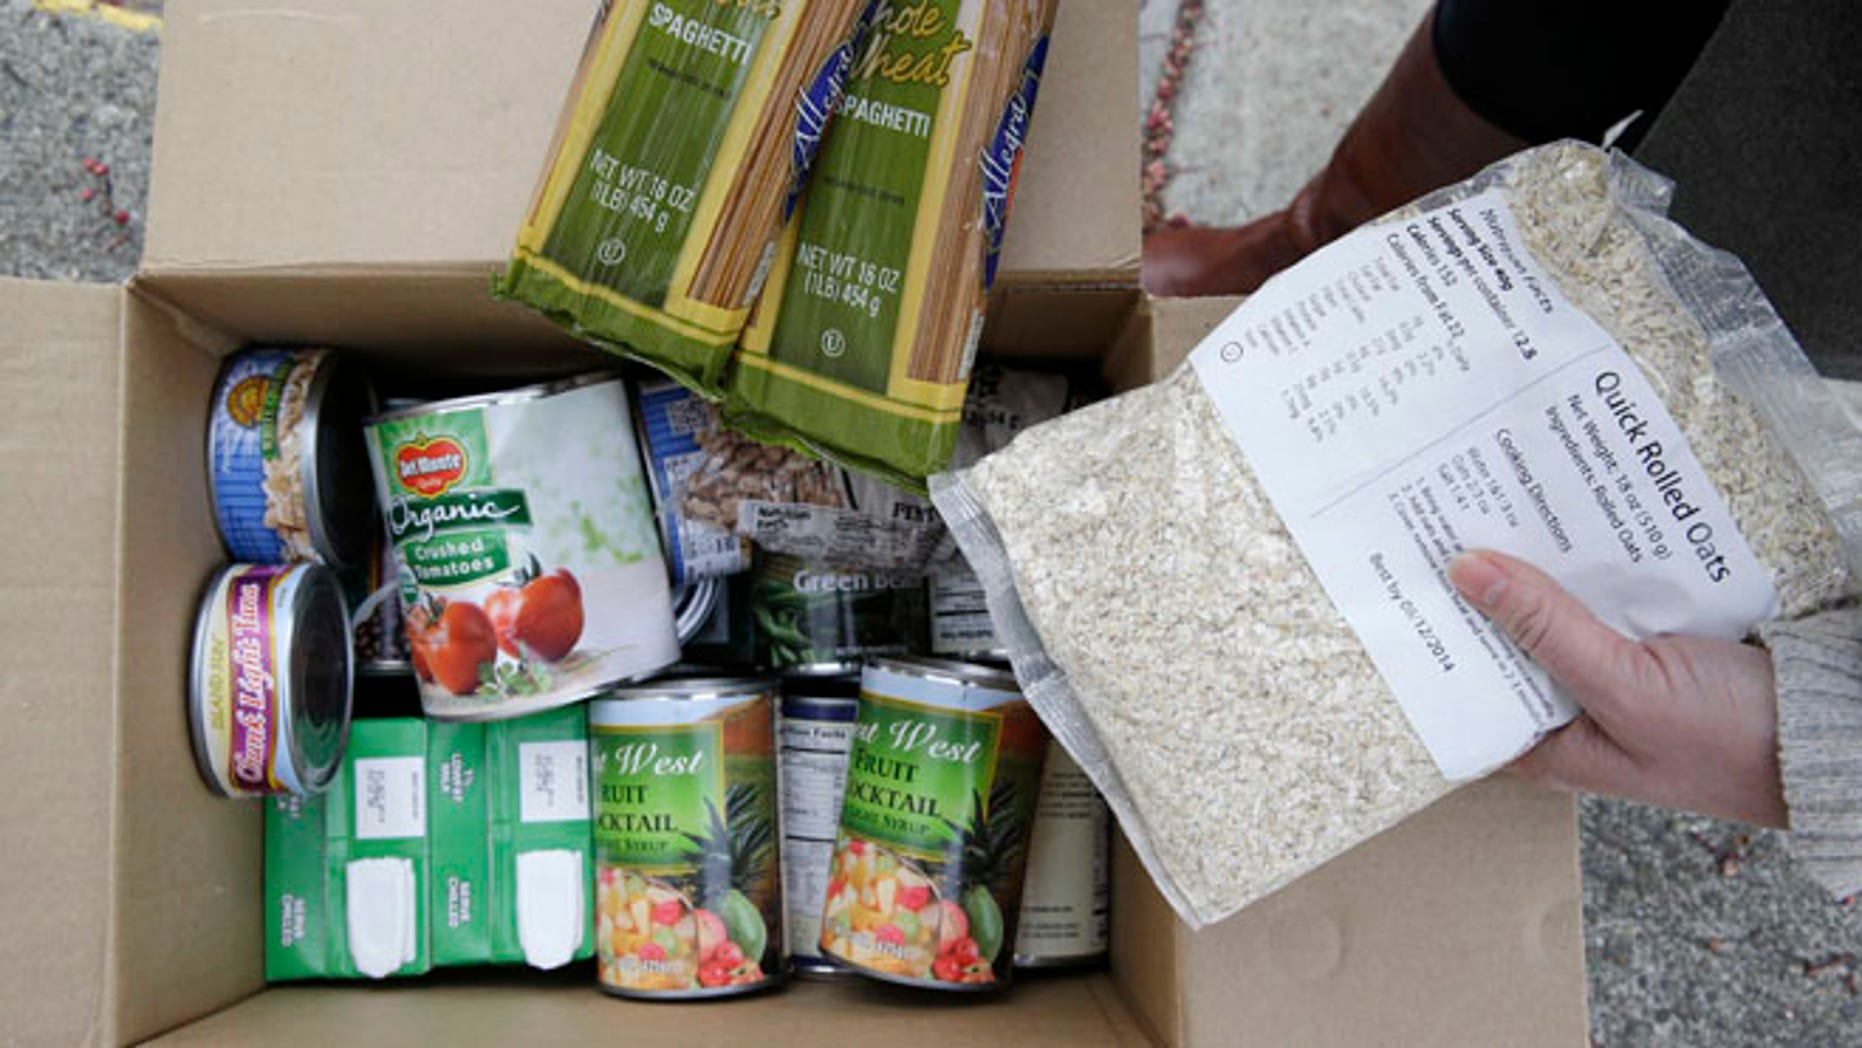 Jan. 8, 2014: Shown here is a specially prepared box of food at a food bank distribution in Petaluma, Calif.